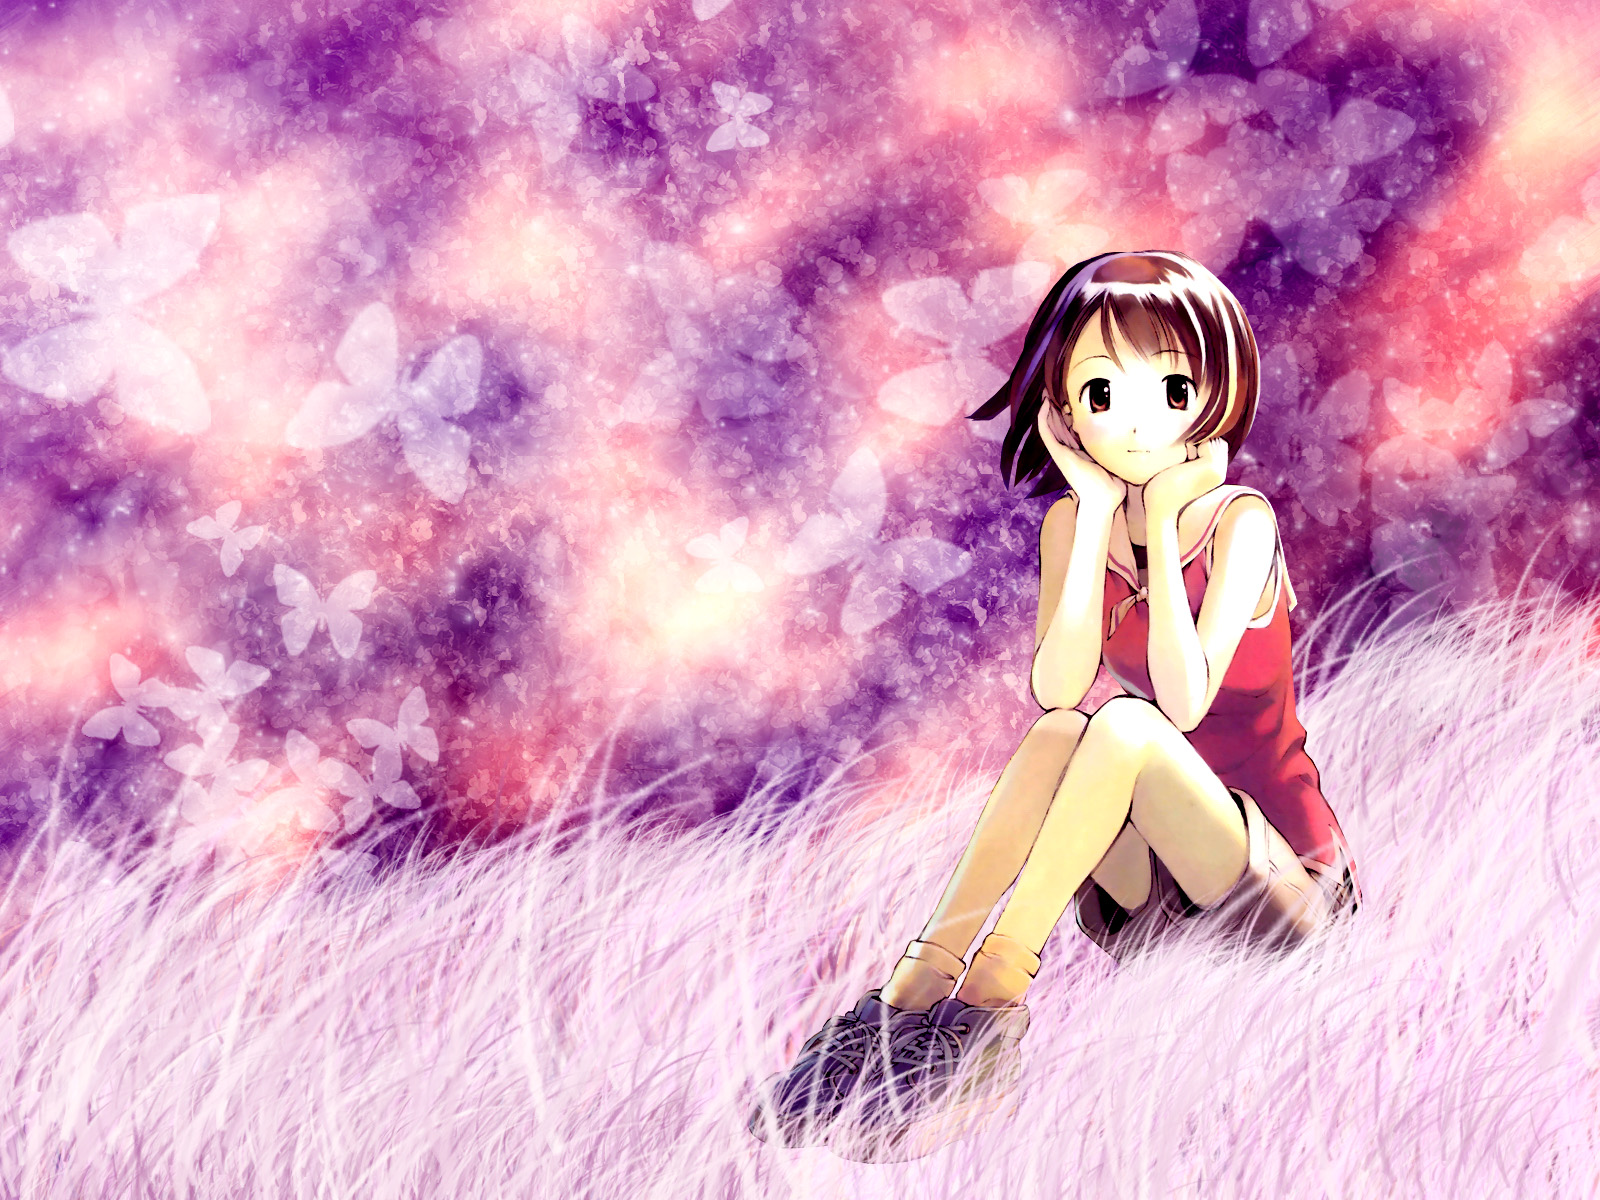 page size 1600x1200 desktop wallpaper of cute anime girl 1600x1200